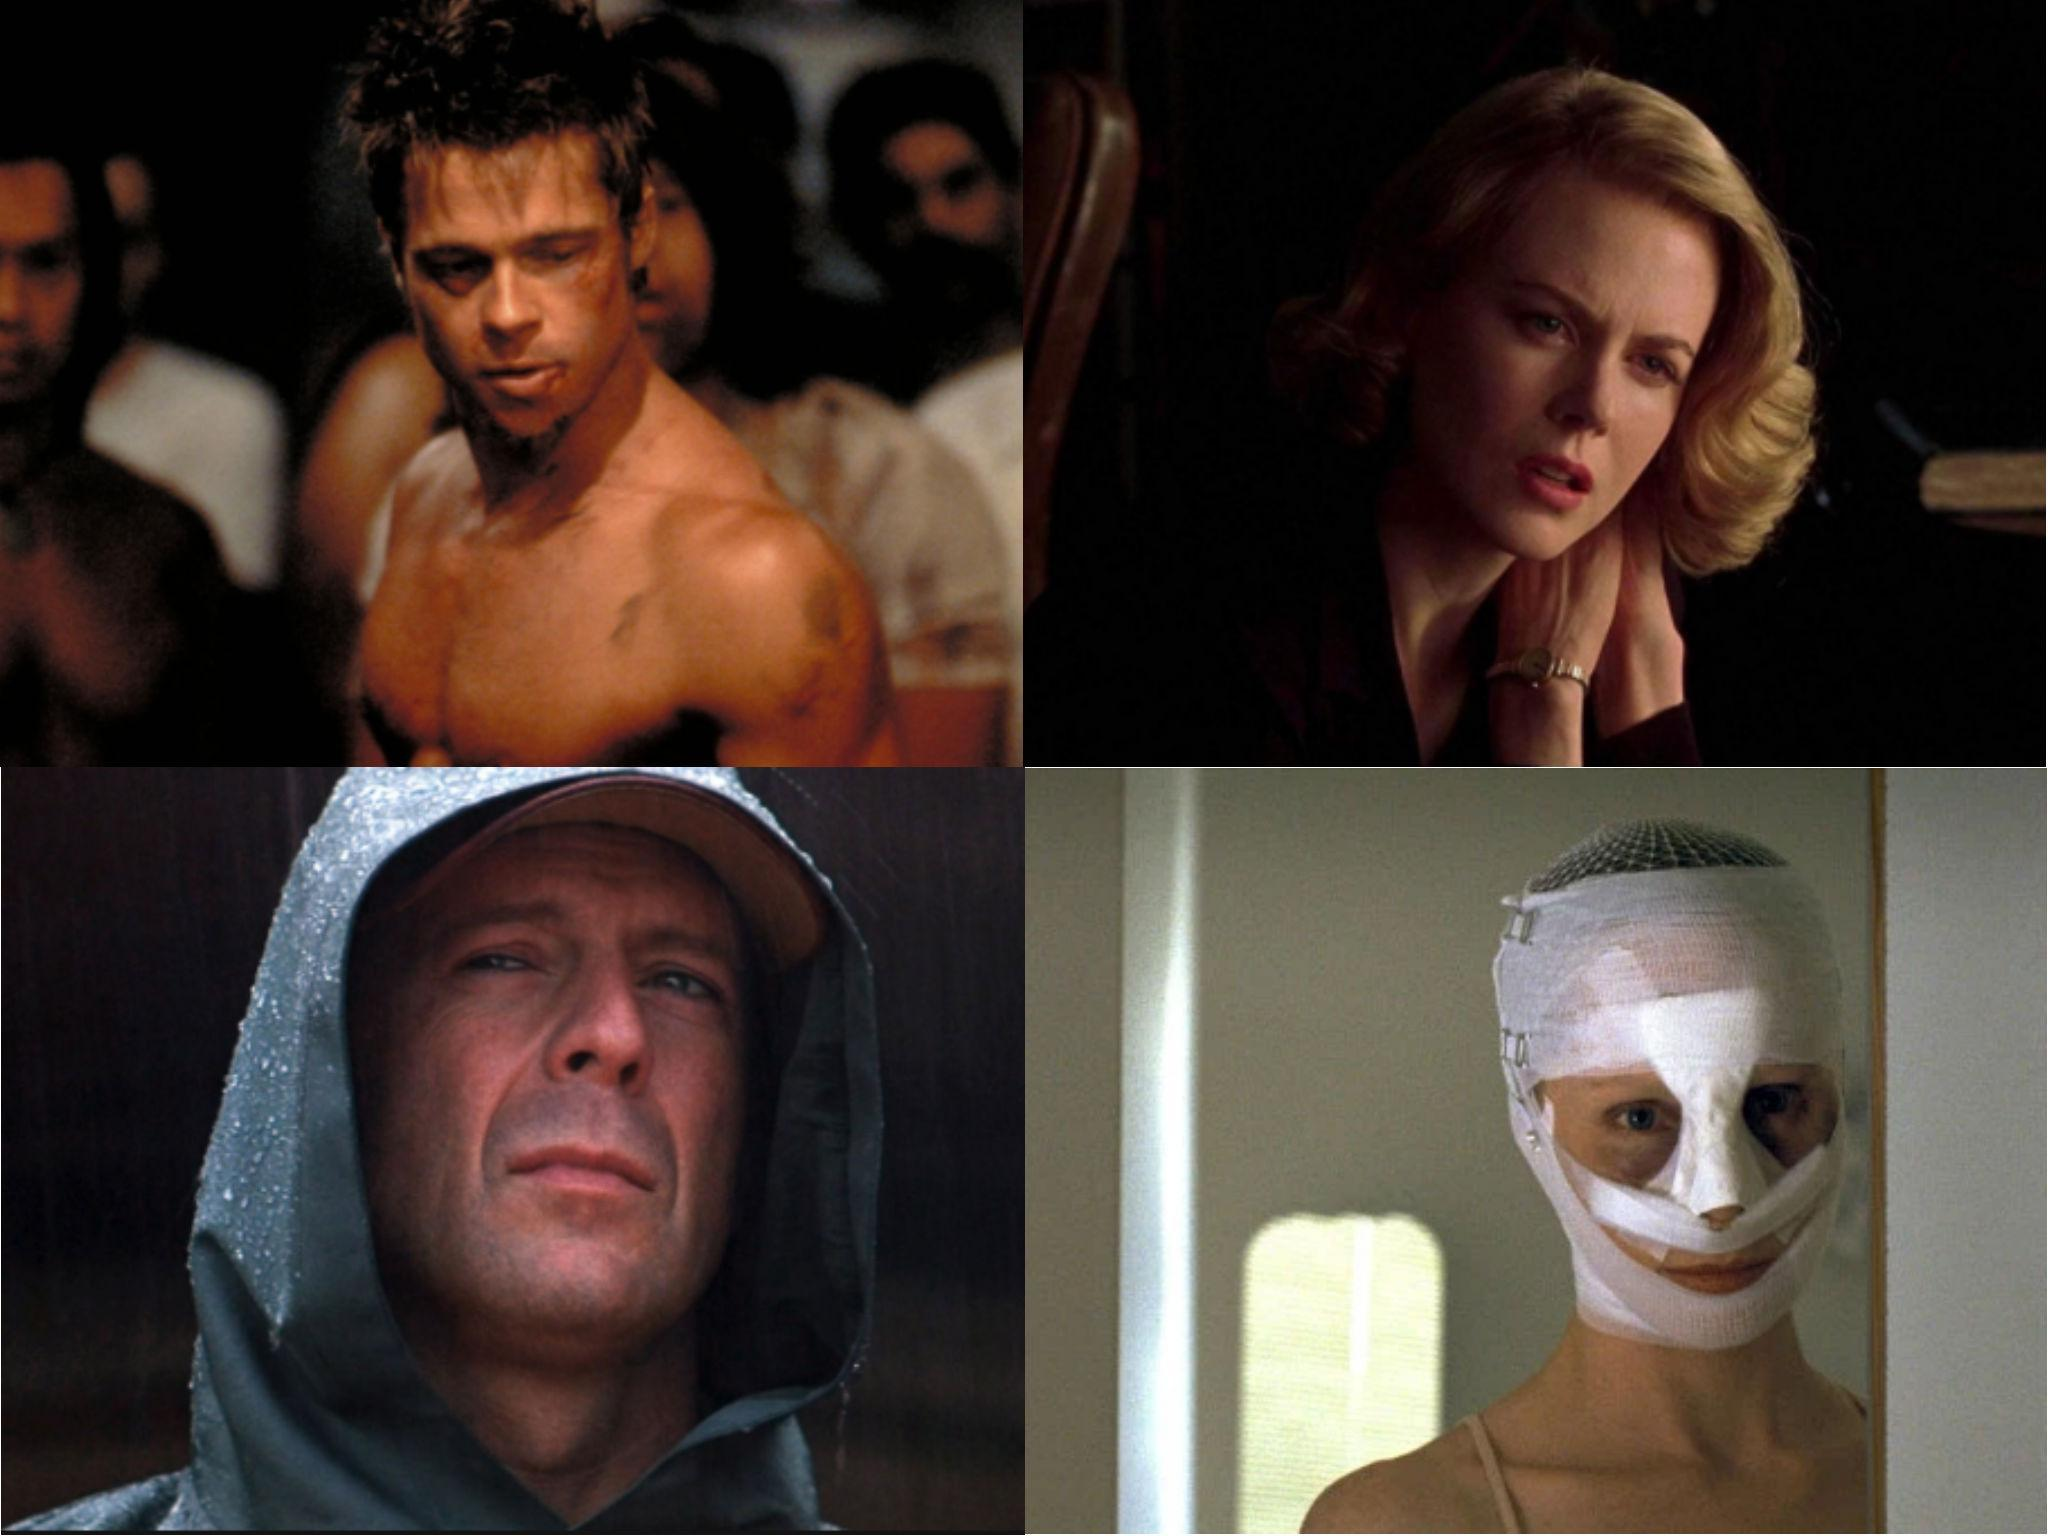 37 best film twists of all time, explained: From The Prestige to Psycho